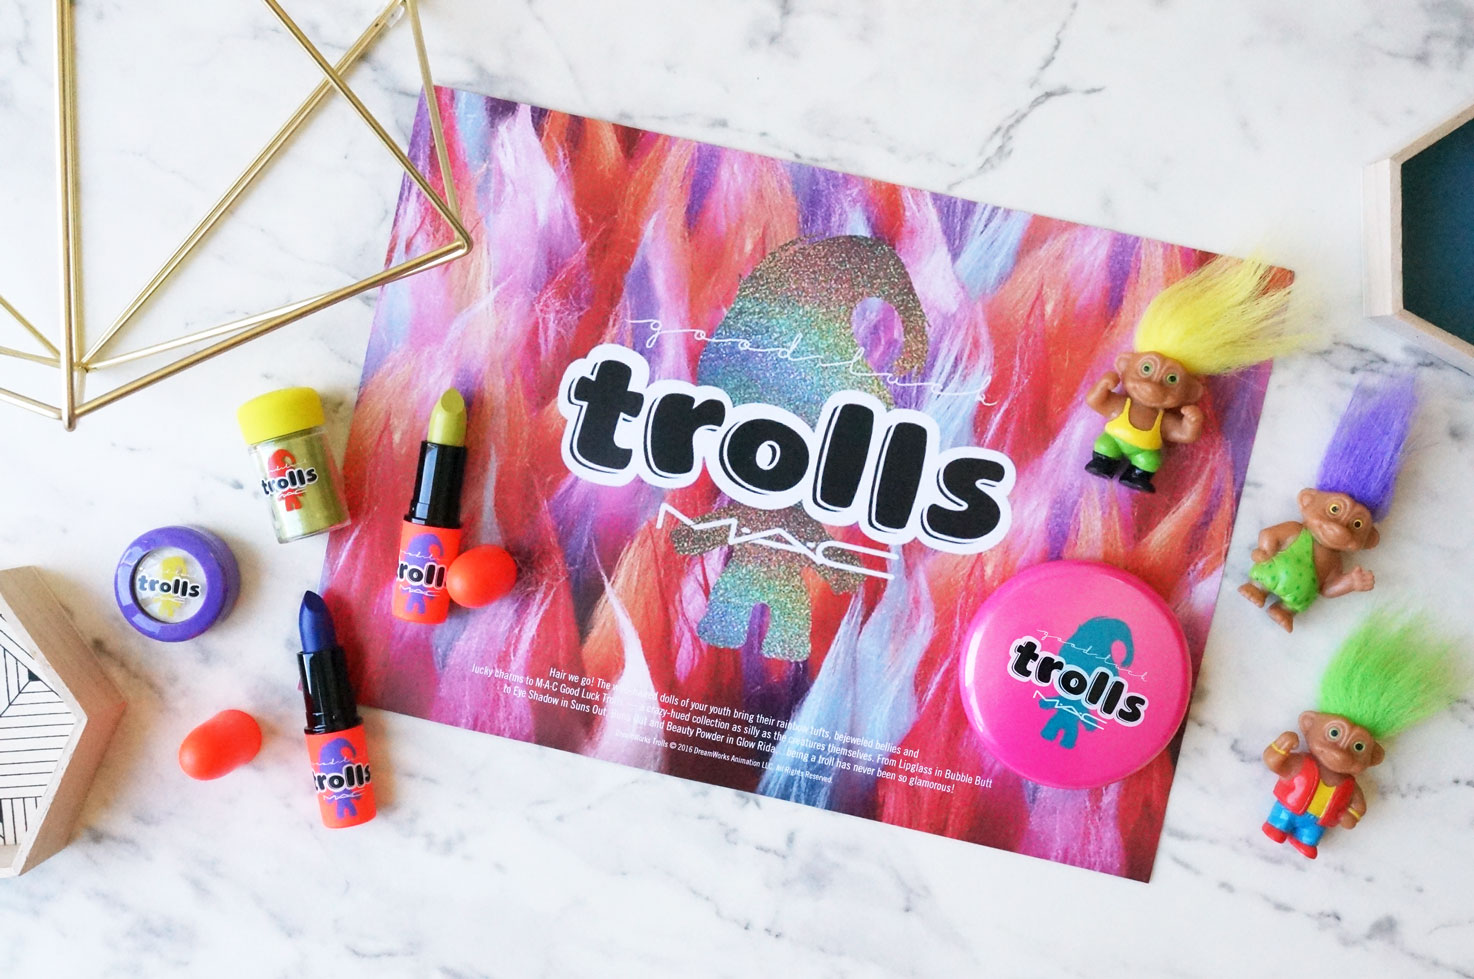 mac-good-luck-trolls-collection